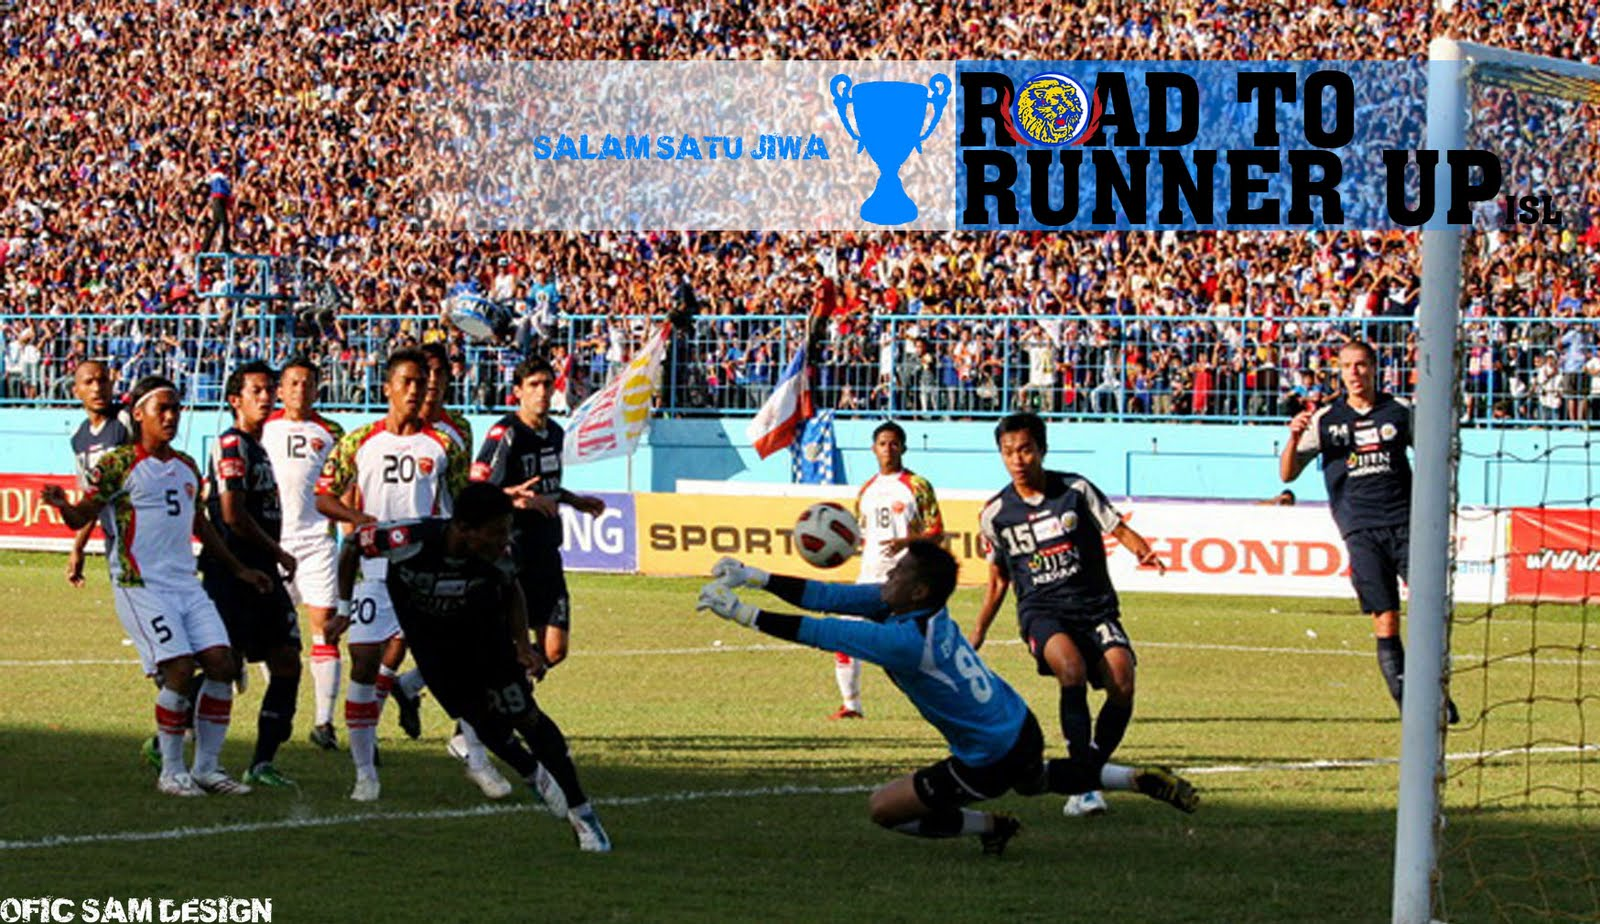 wallpaper AREMA INDONESIA 2011 edisi JULI part 2 (ROAD TO RUNNER UP